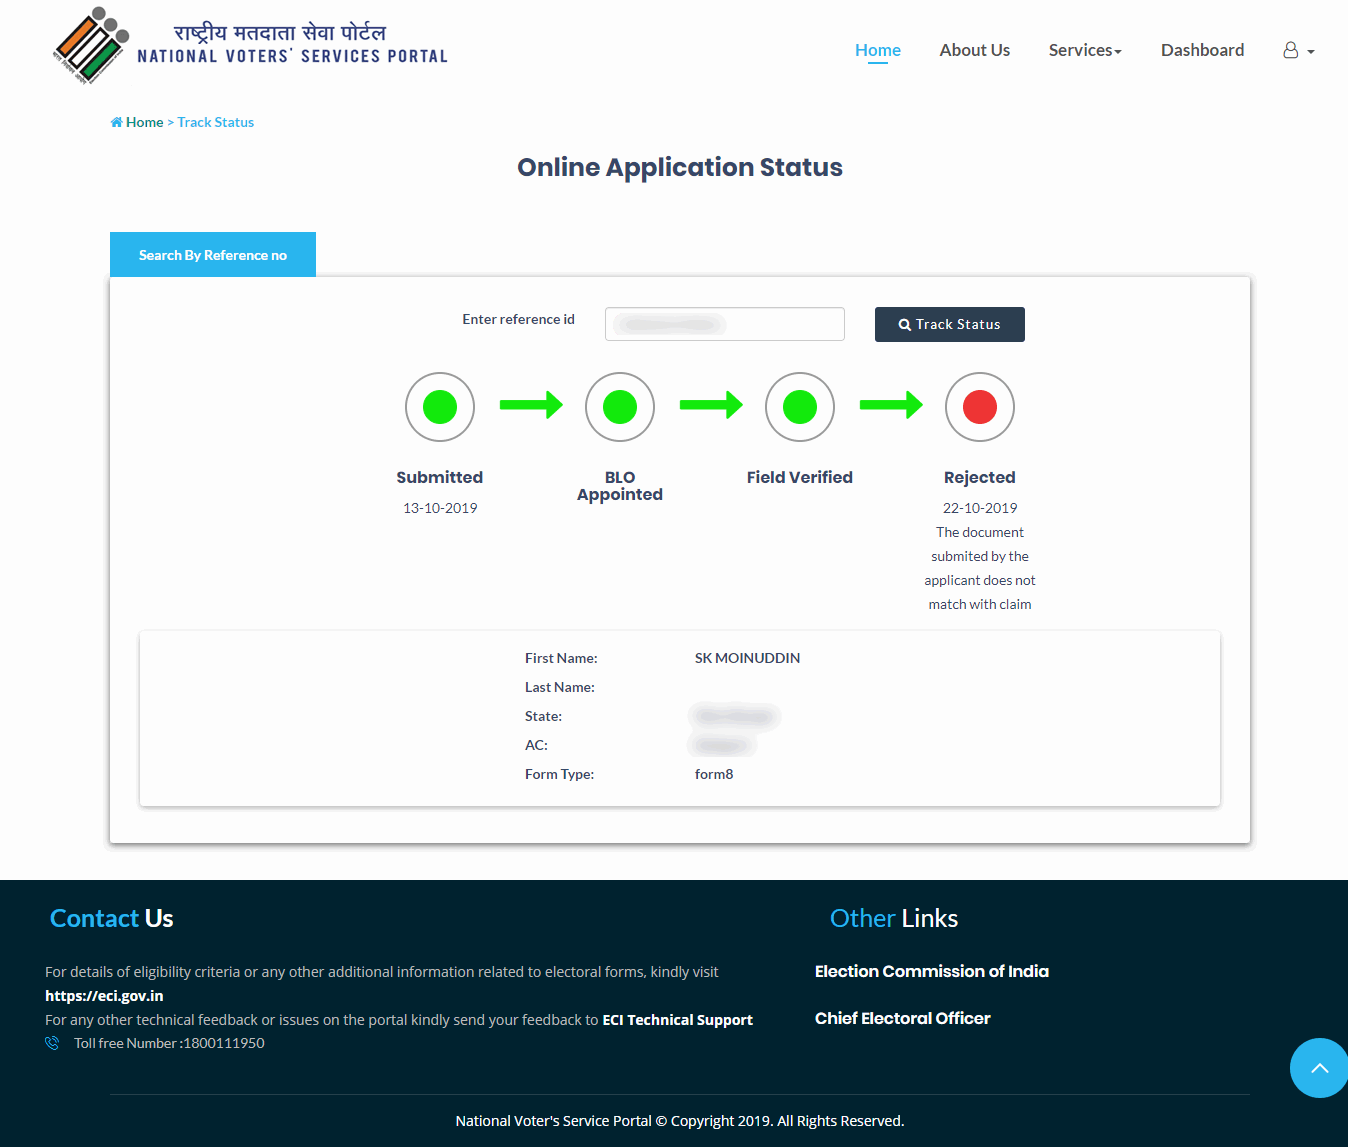 NVSP Application Status Rejected